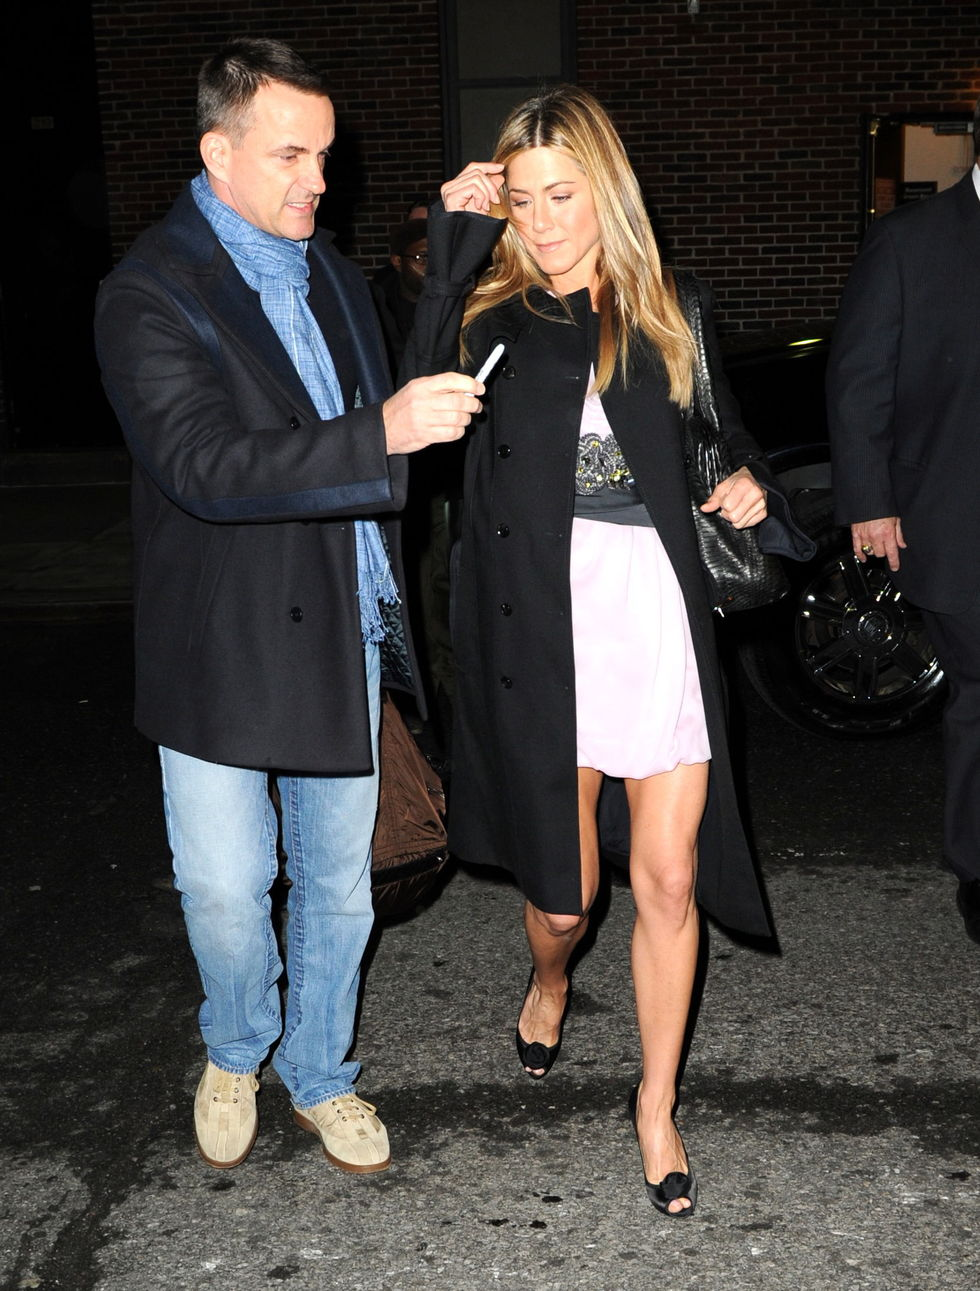 jennifer-aniston-at-the-late-show-with-david-letterman-in-new-york-01